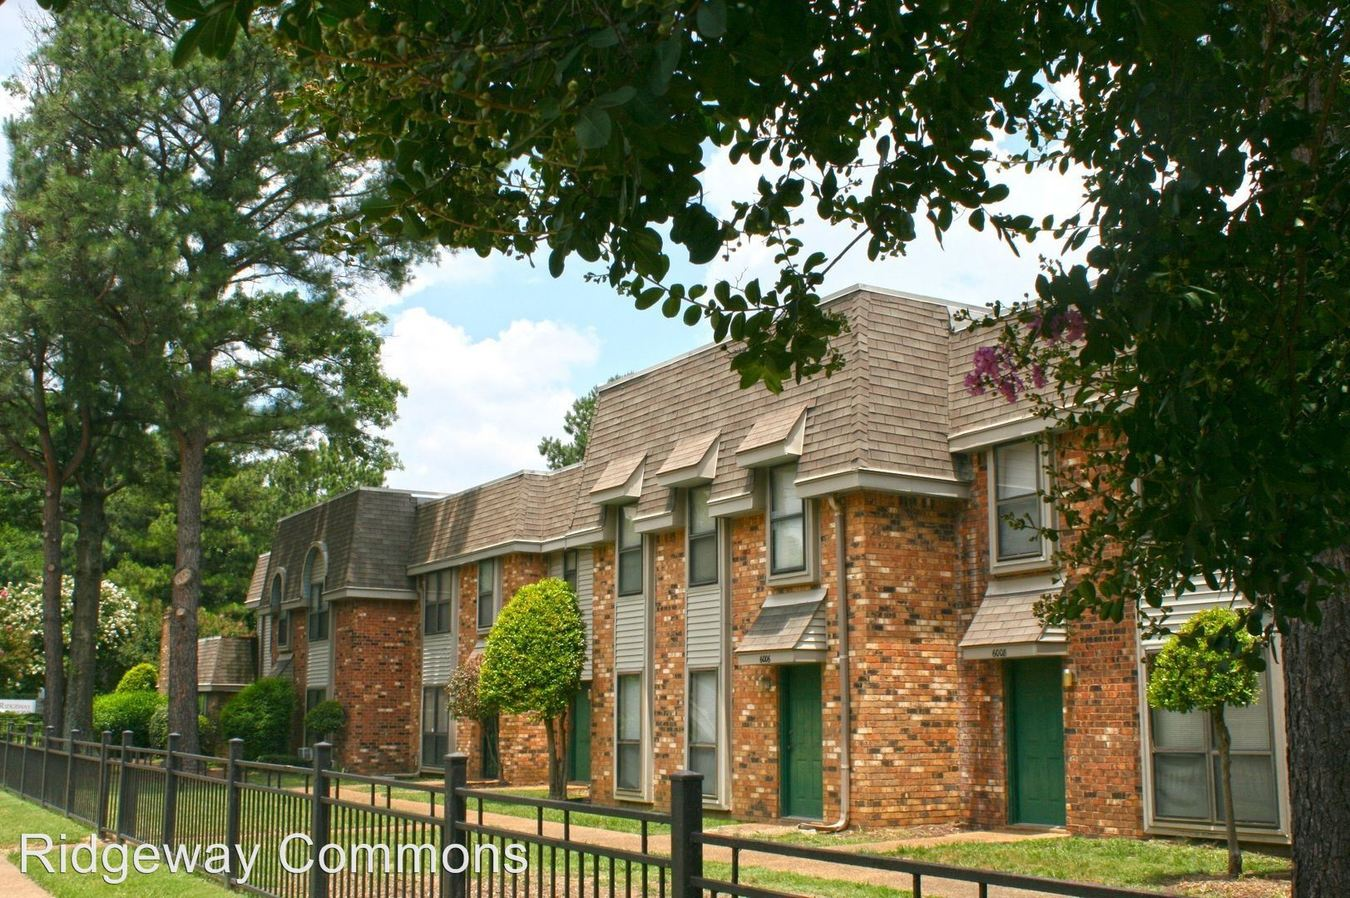 1 Bedroom 1 Bathroom Apartment for rent at Ridgeway Commons Townhomes in Memphis, TN